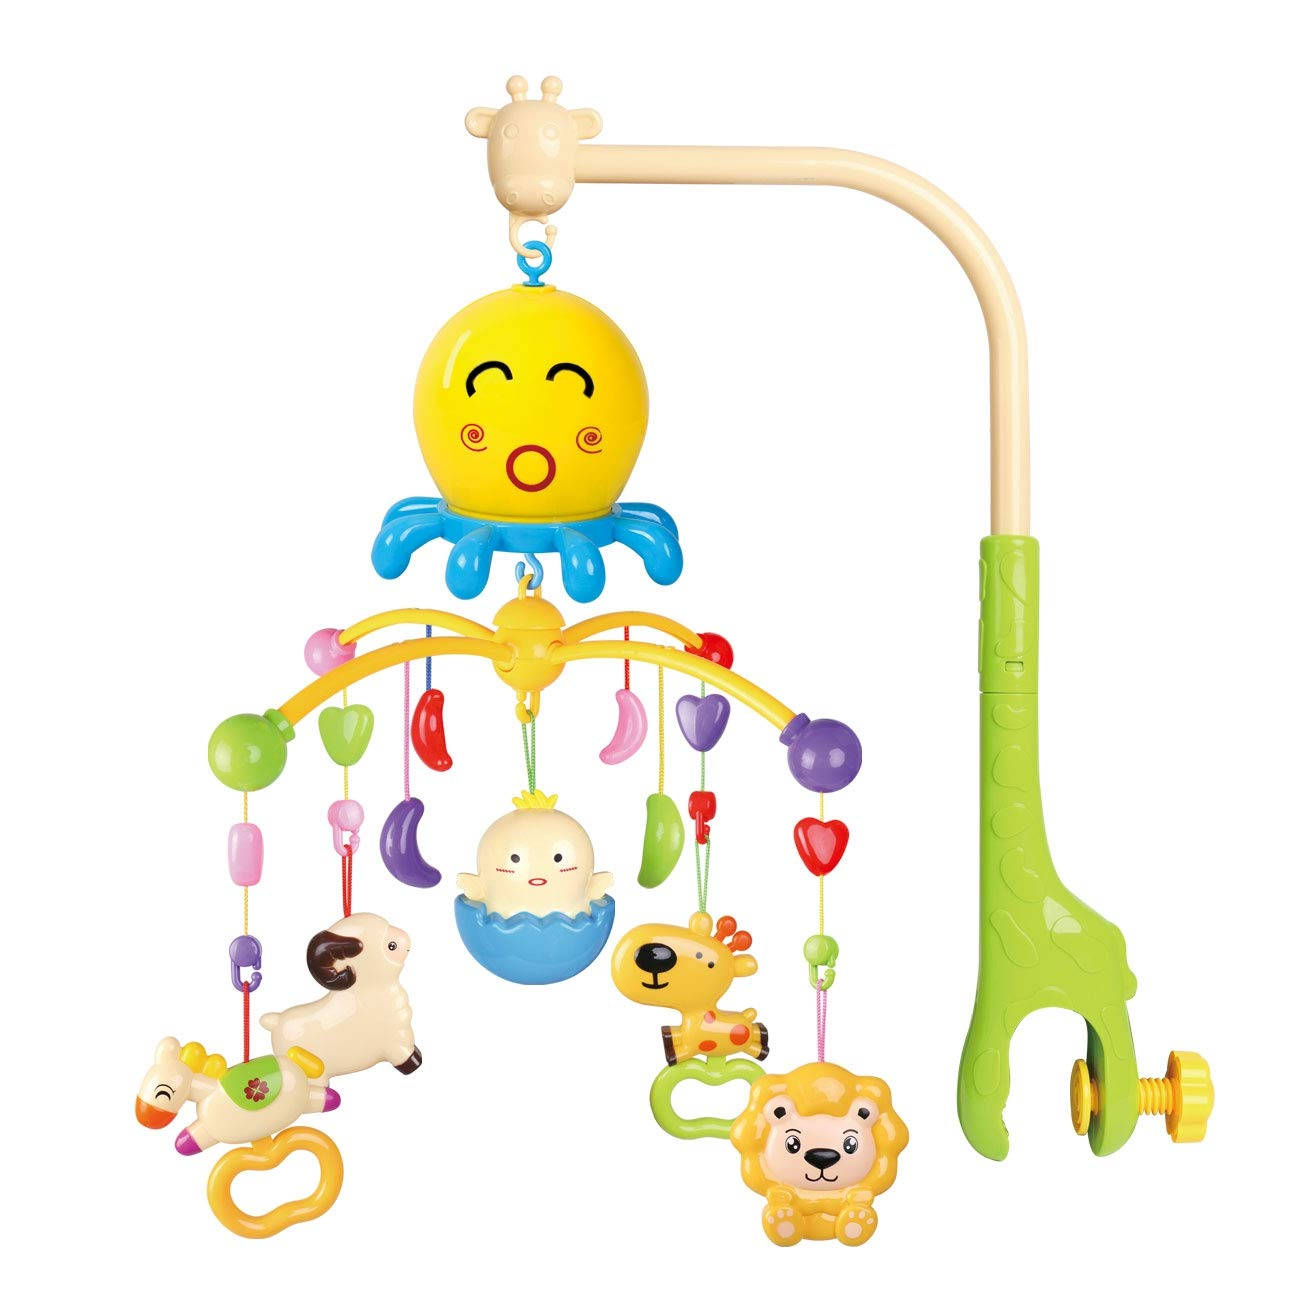 WishaLife Dreamful Bed Ring, Musical Crib Musical Mobile Bed Bell, Baby Bed Bell Rattle Rotate Bracket Toy for Baby (Green)